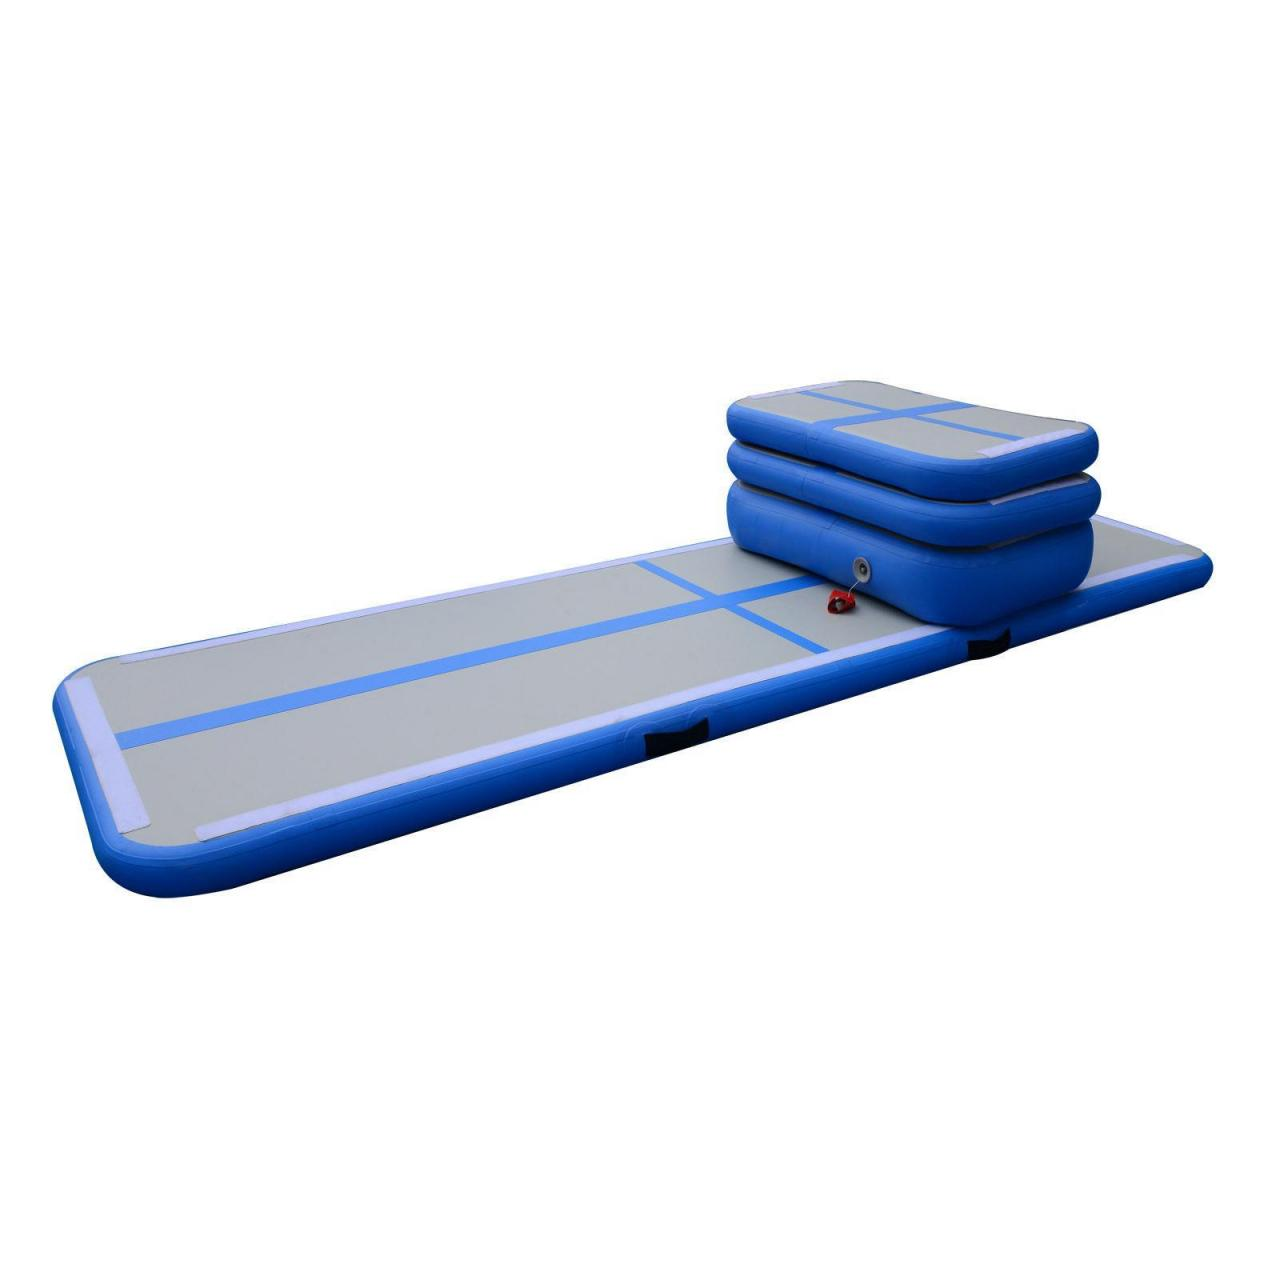 Online yoga mat with cover buy yoga mat near me